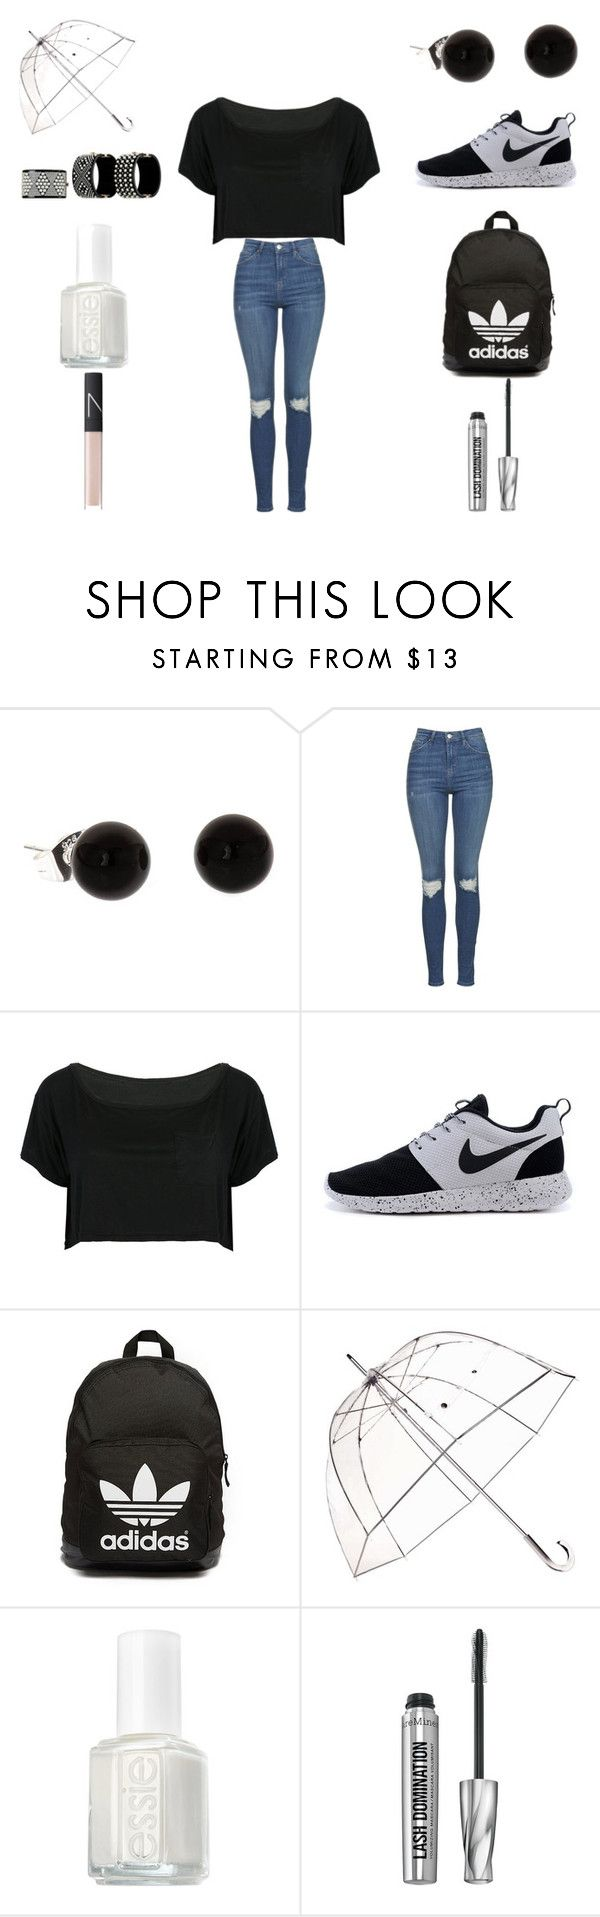 """""""The Beach"""" by kiraissocool on Polyvore featuring Topshop, WithChic, adidas Originals, Totes, Chanel, Essie, Bare Escentuals and NARS Cosmetics"""